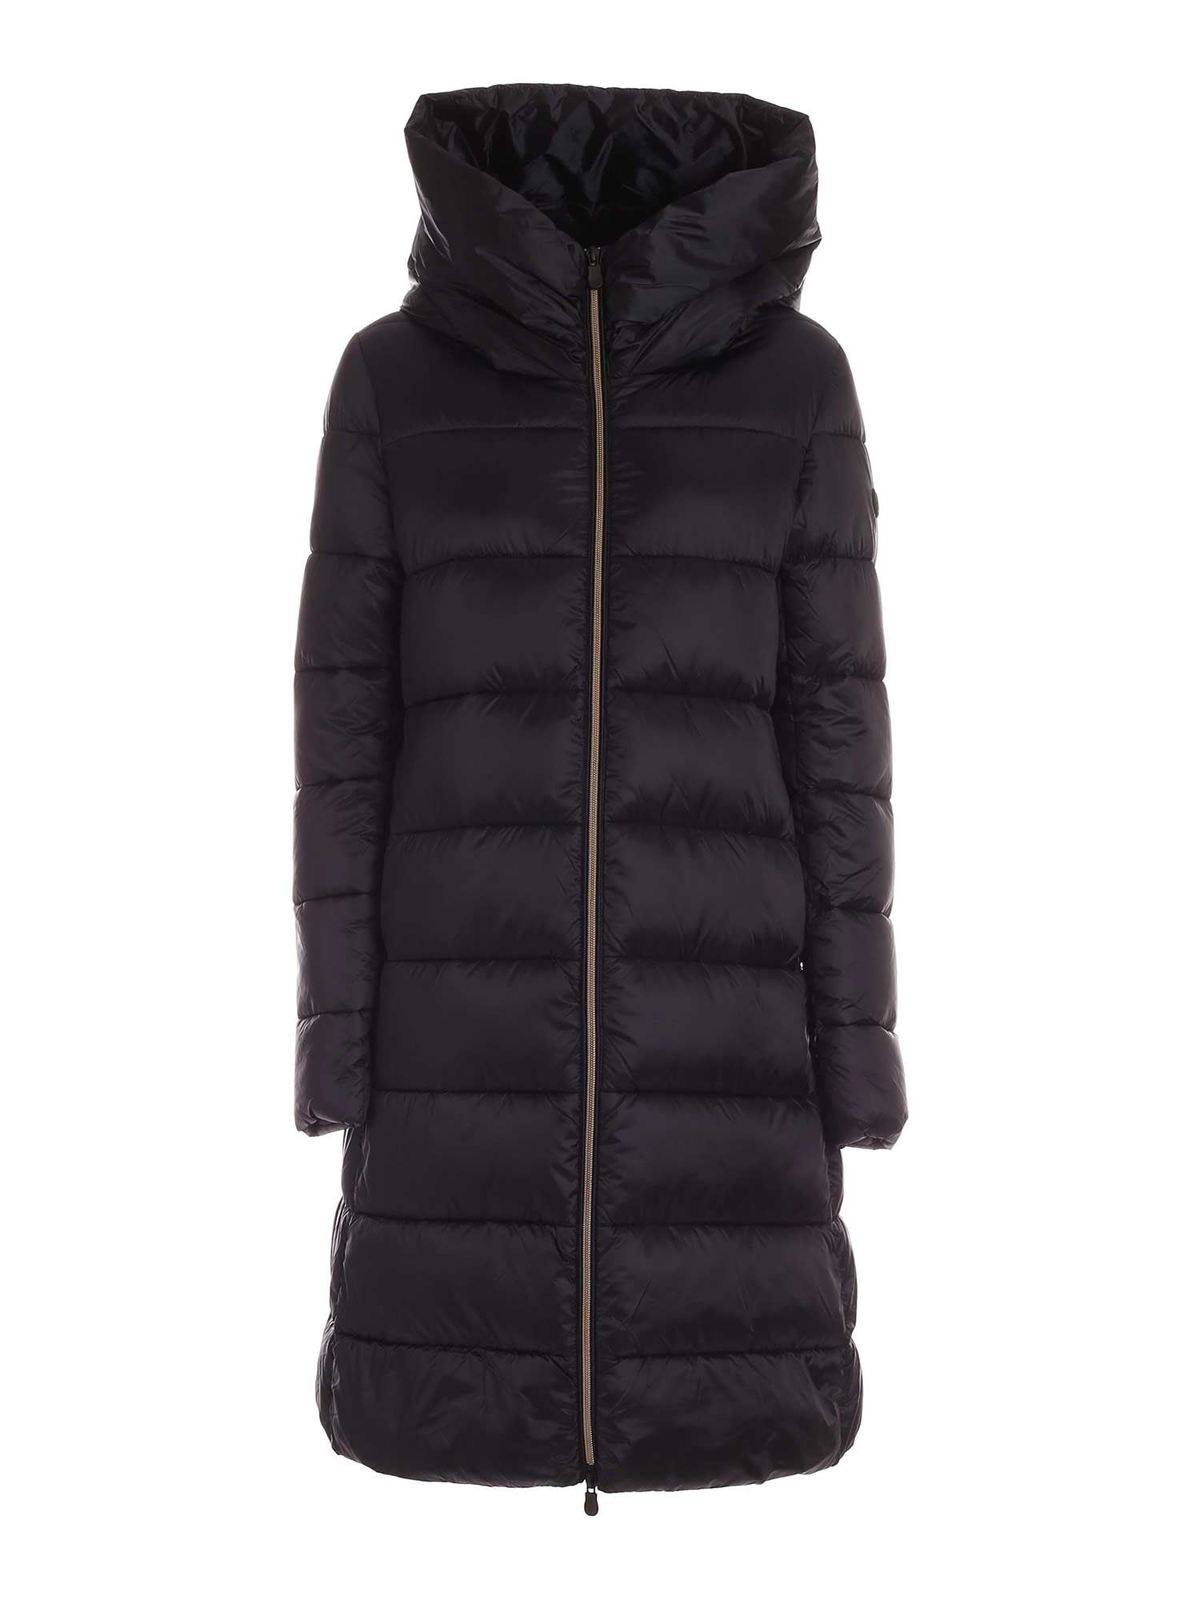 Save The Duck LONG DOWN JACKET IN BLACK